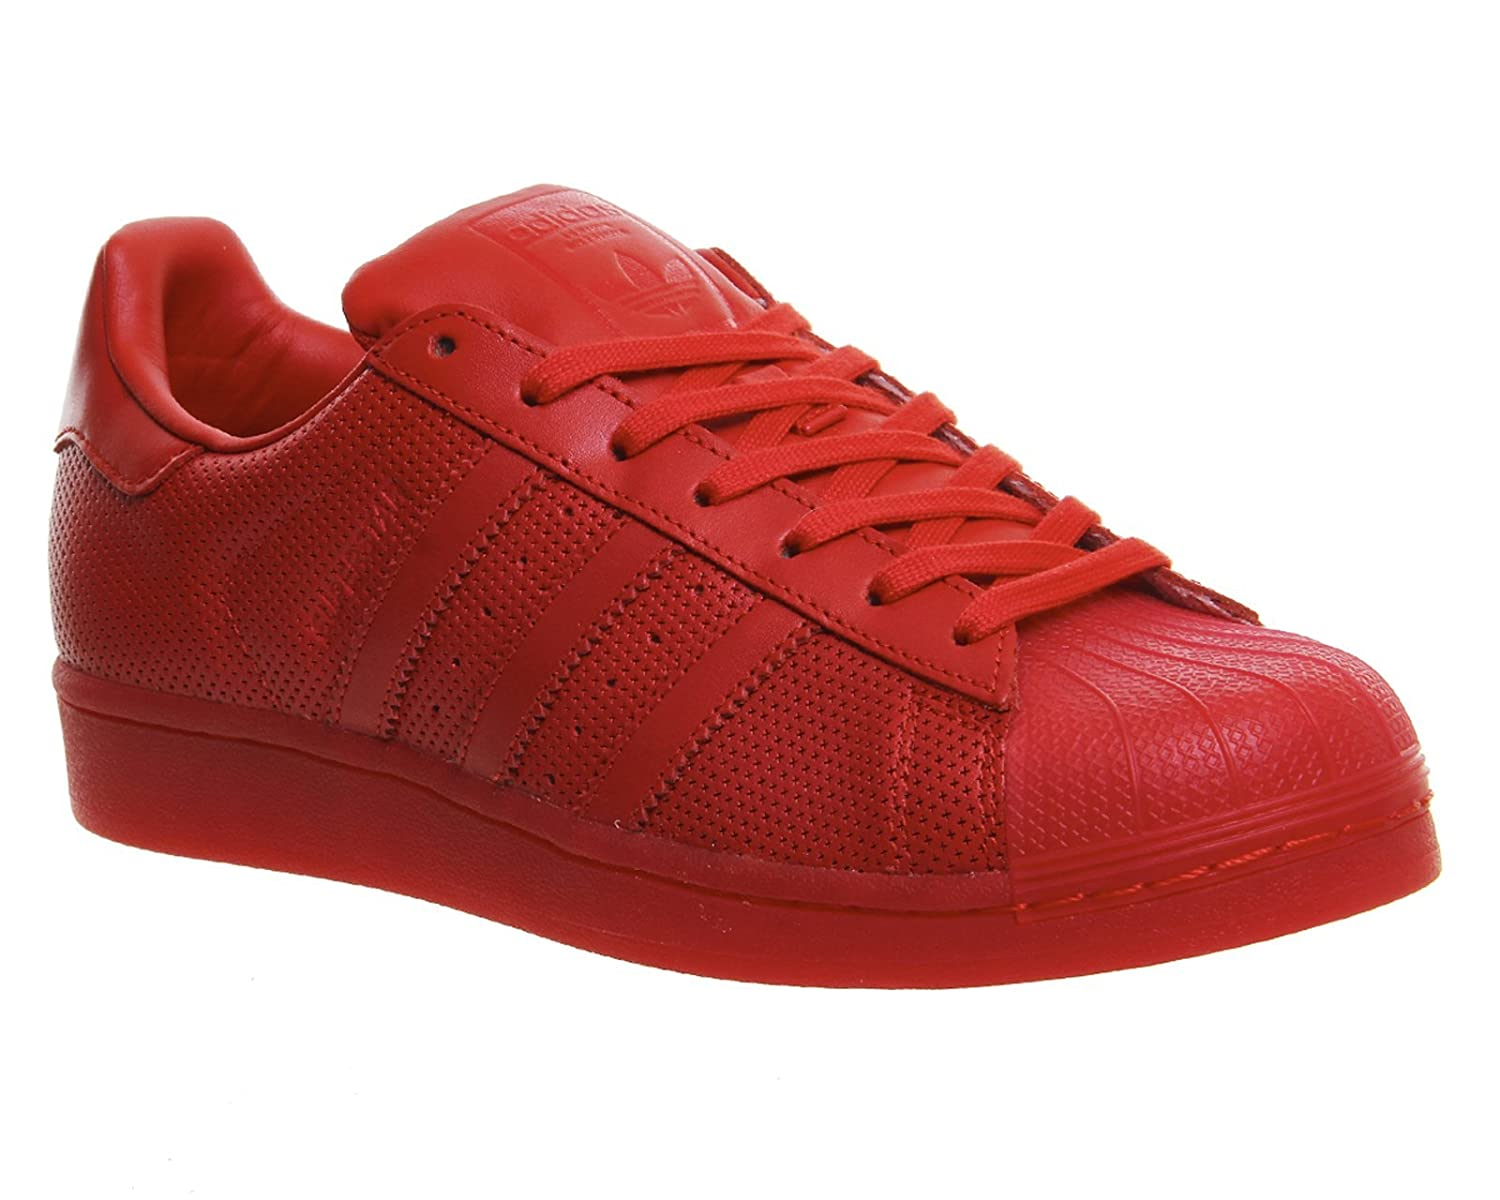 the best attitude 4090a 03ff9 adidas Mens Courtvantage Adicolor S80253 Trainers, Red, Size UK 9.5 adidas  Originals Amazon.co.uk Sports  Outdoors